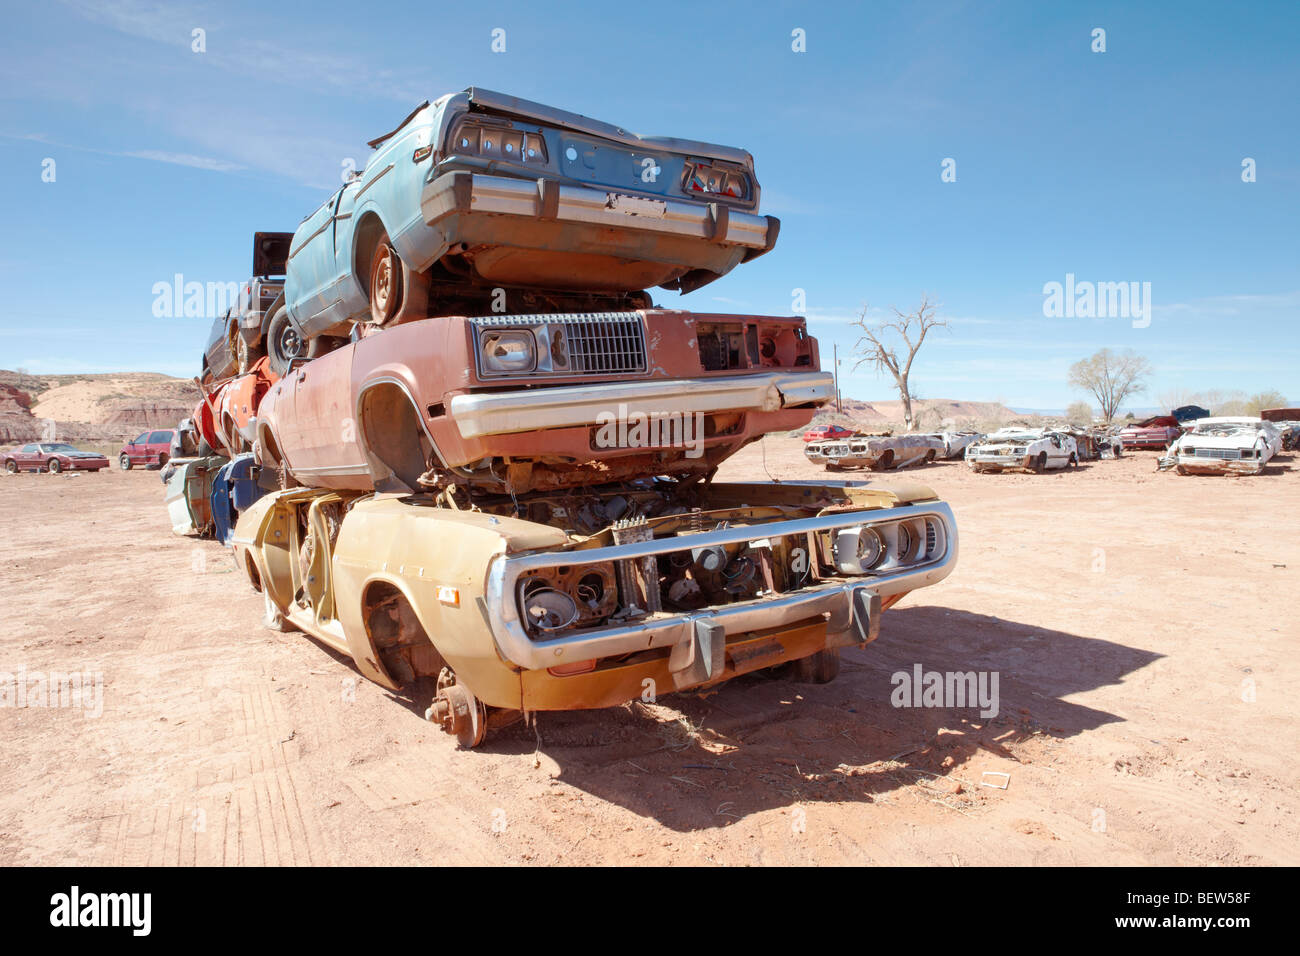 Scrap Metal Junk Yard Stock Photos & Scrap Metal Junk Yard Stock ...